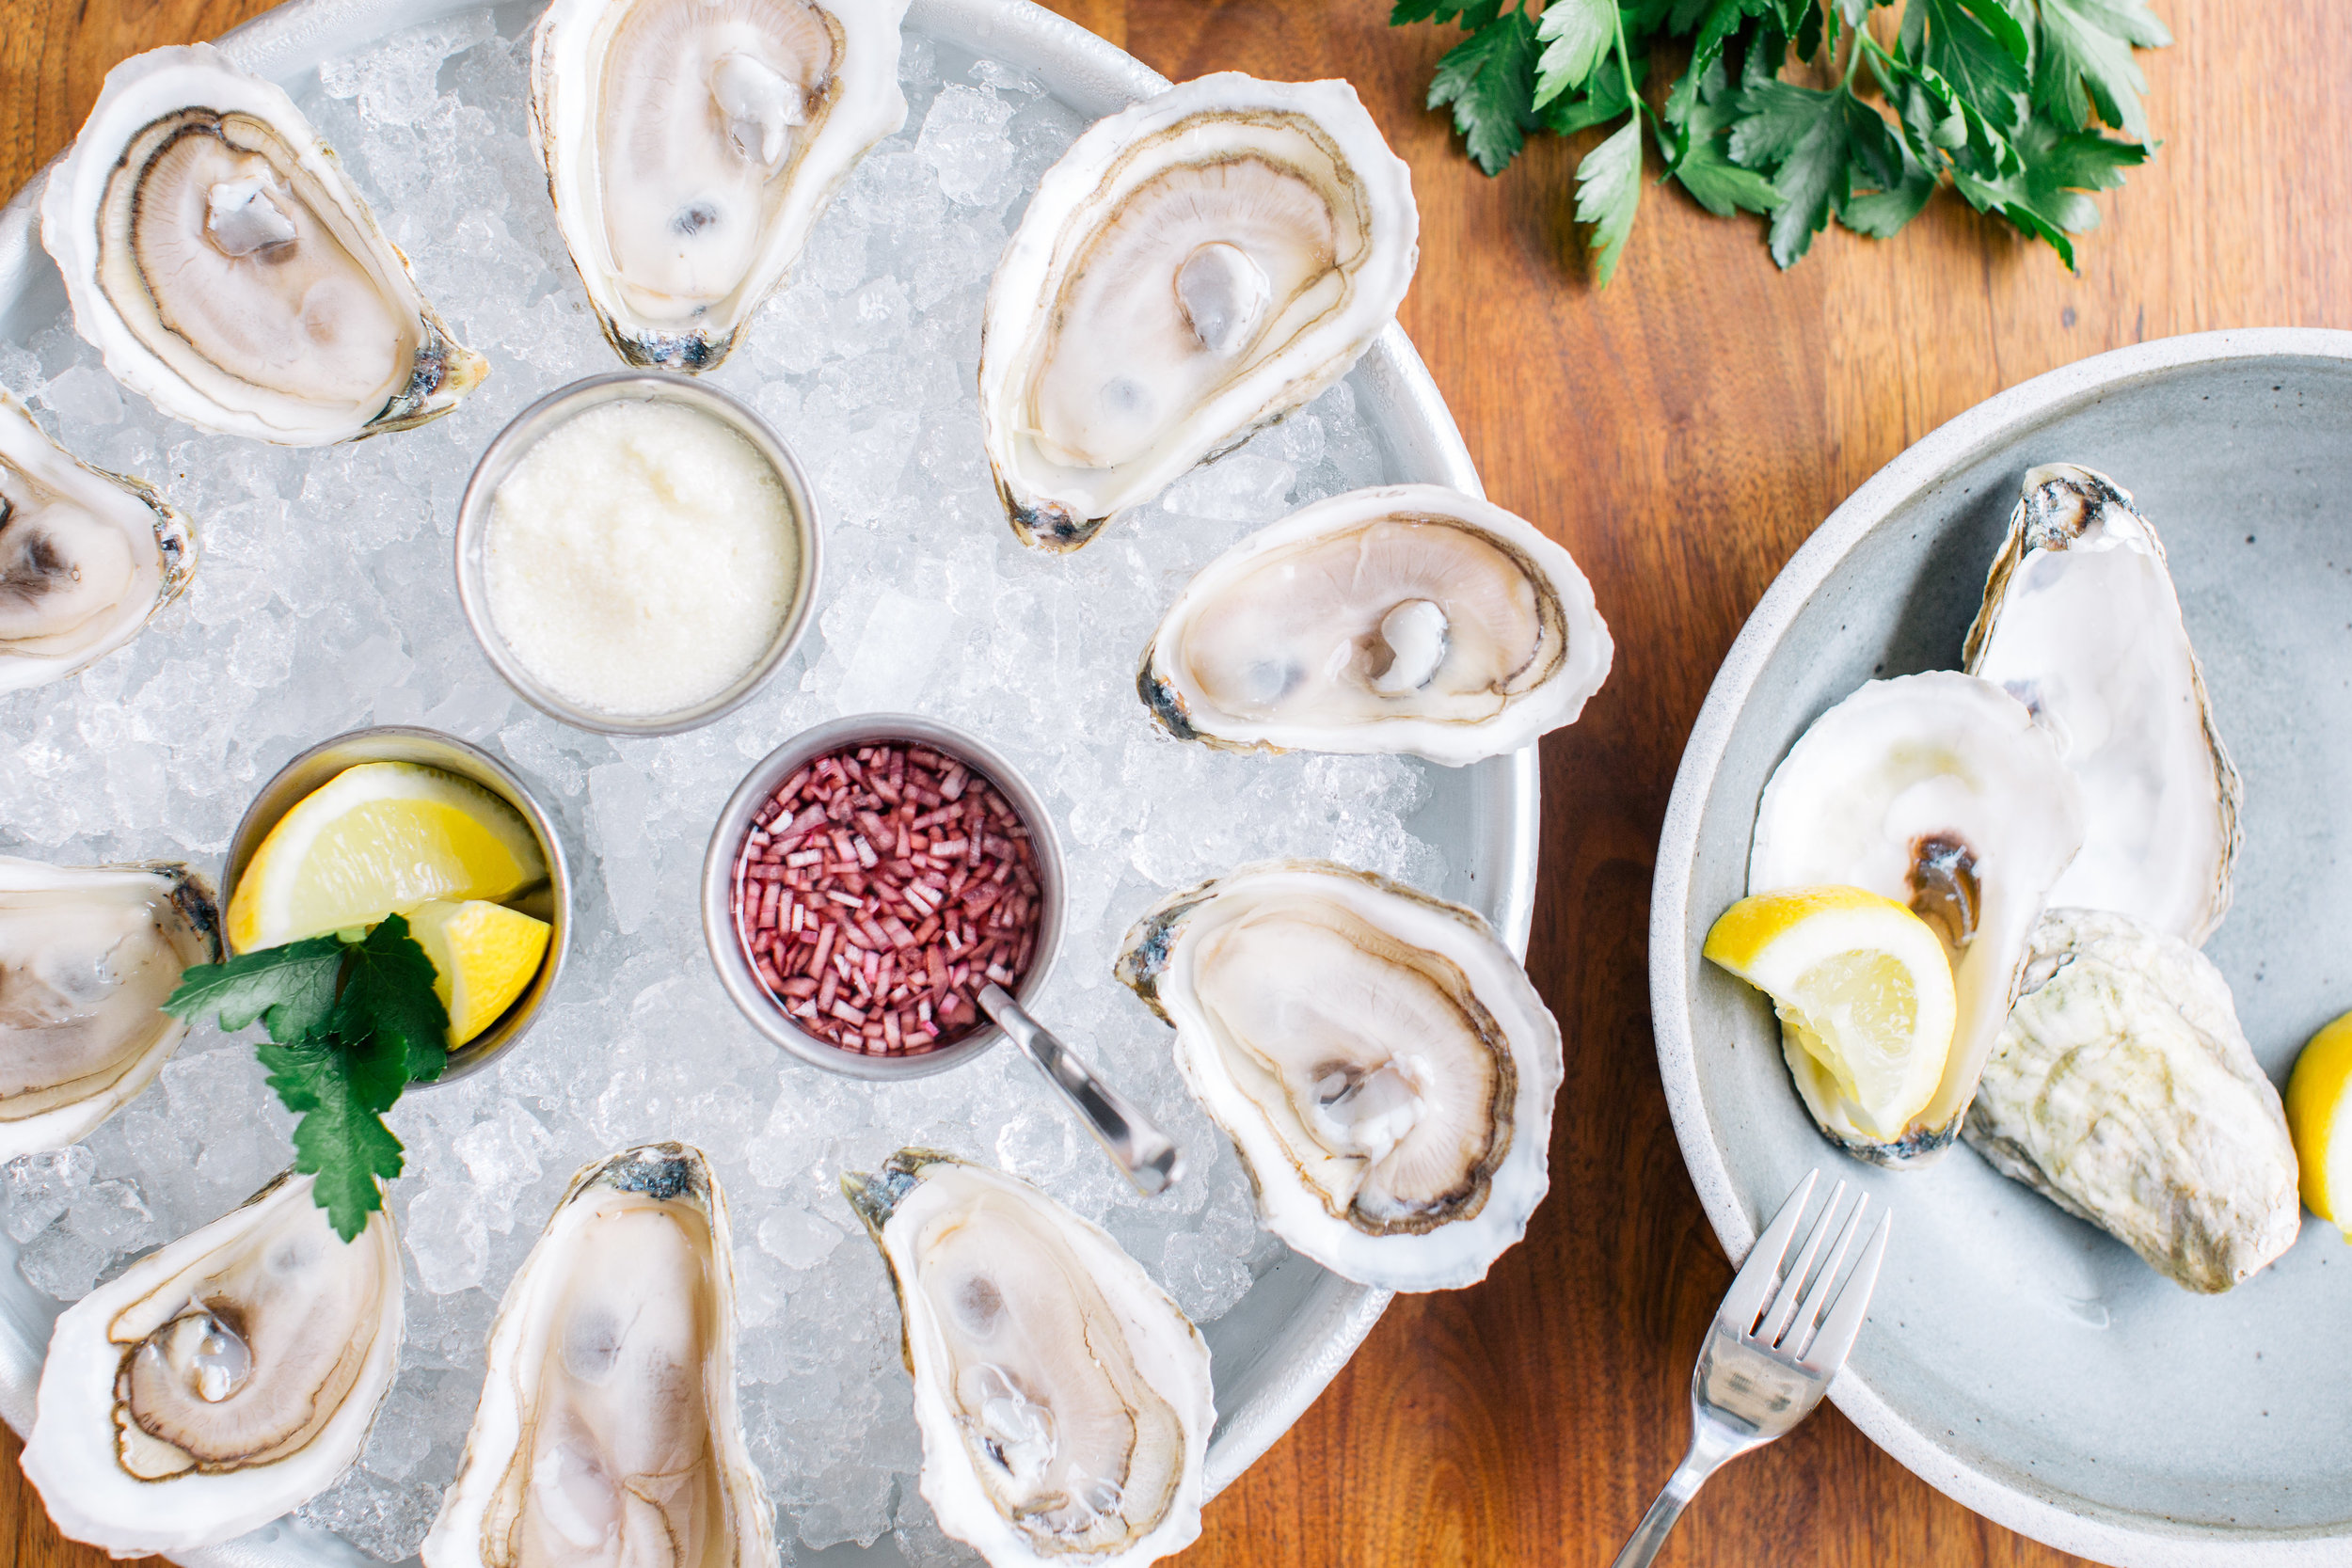 Oysters on ice with mignonette.